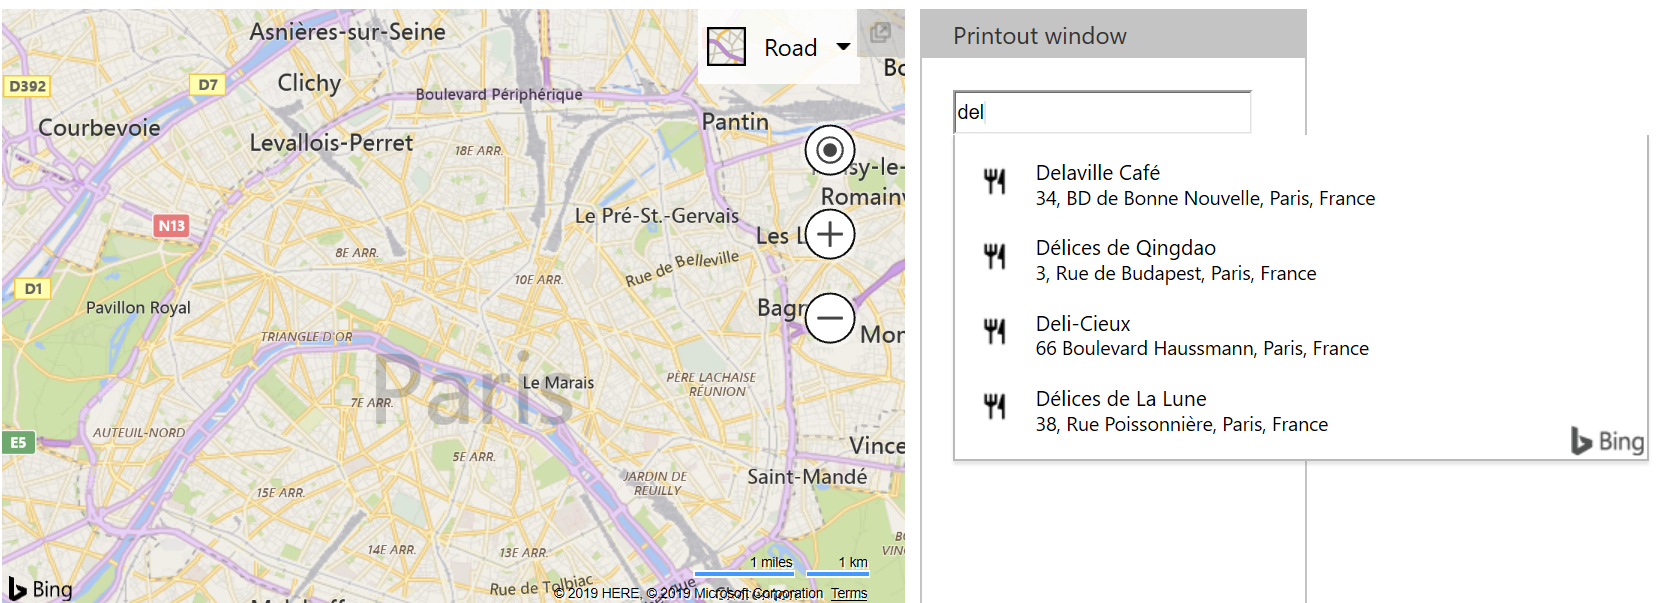 Bing Maps Autosuggest - France